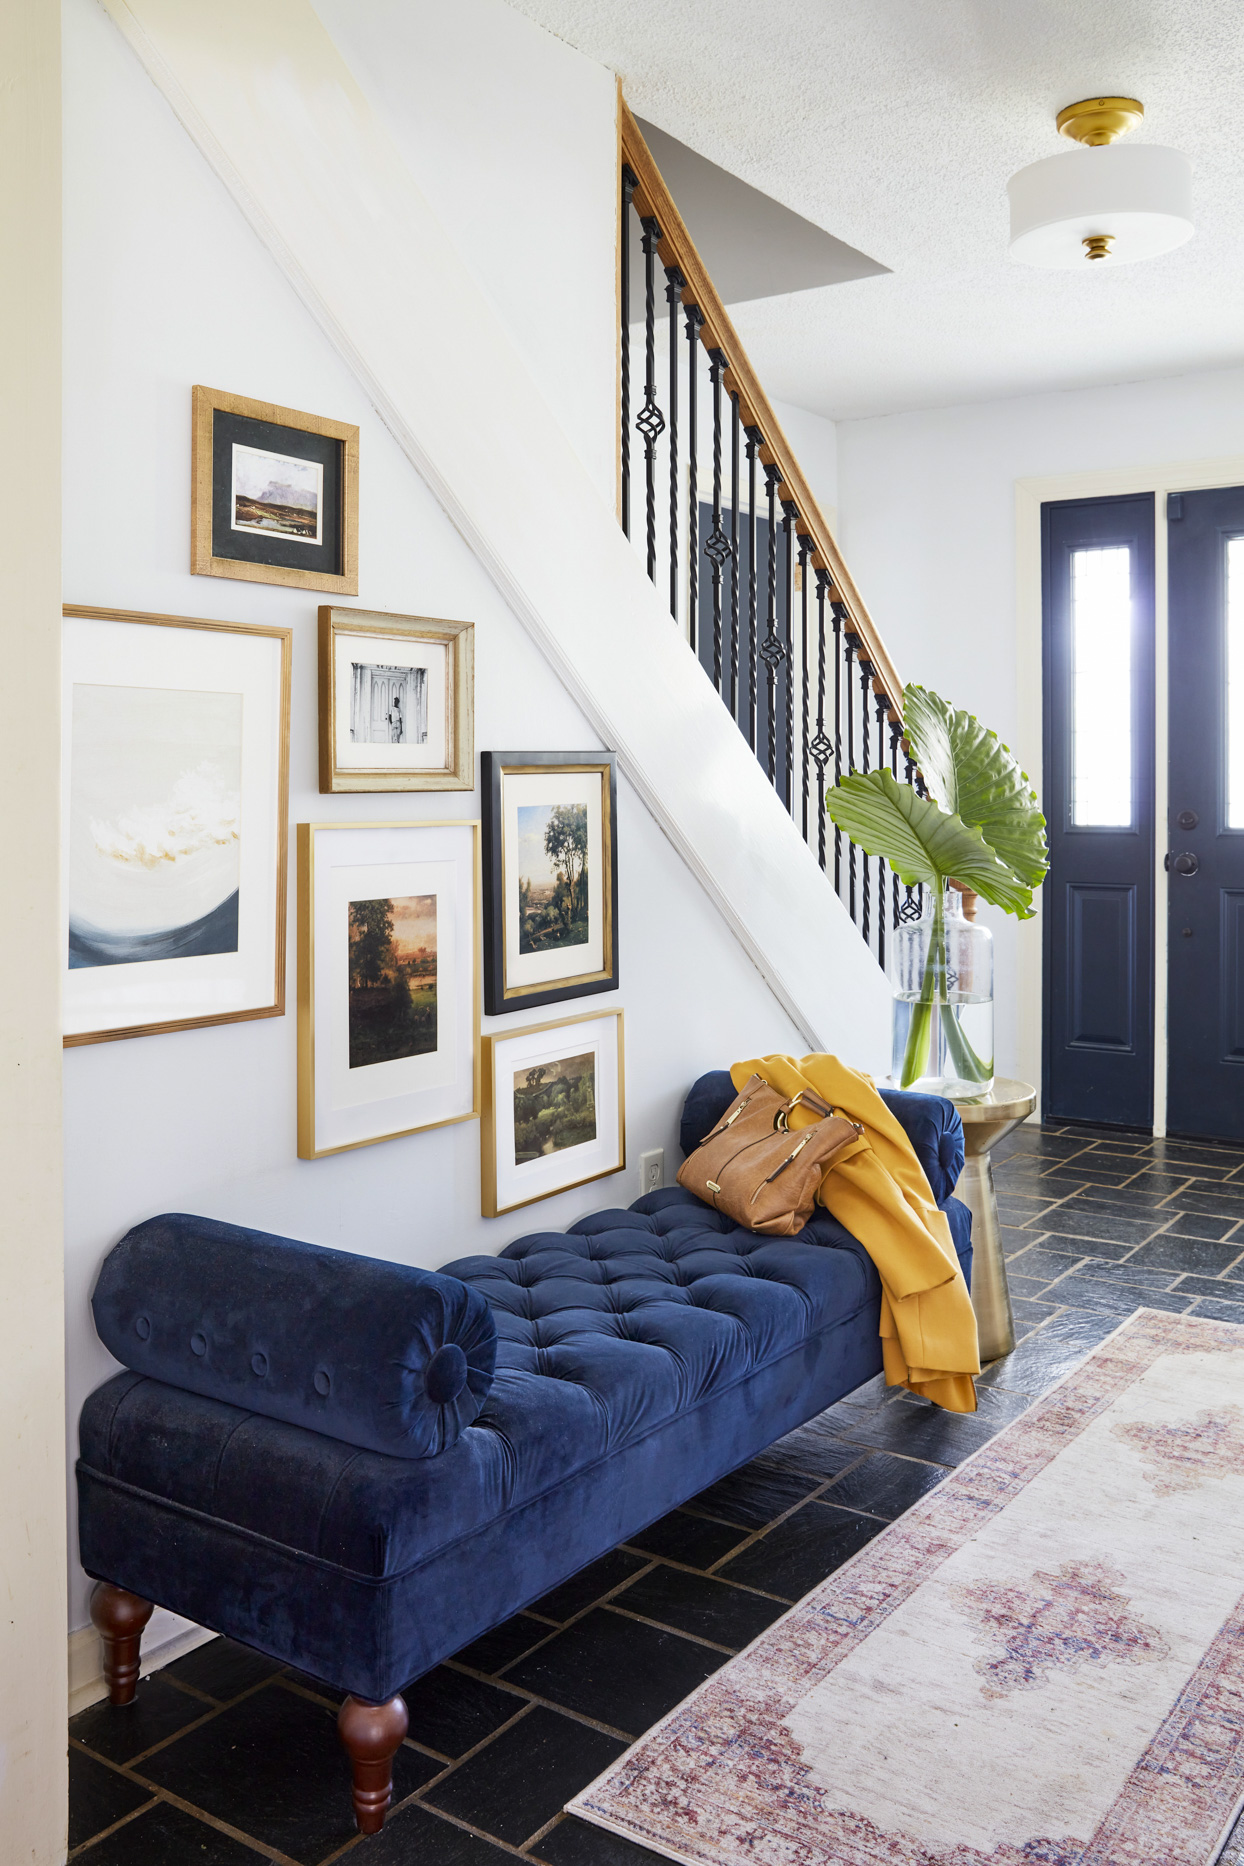 10 Art Arrangements for Your Staircase Wall Space